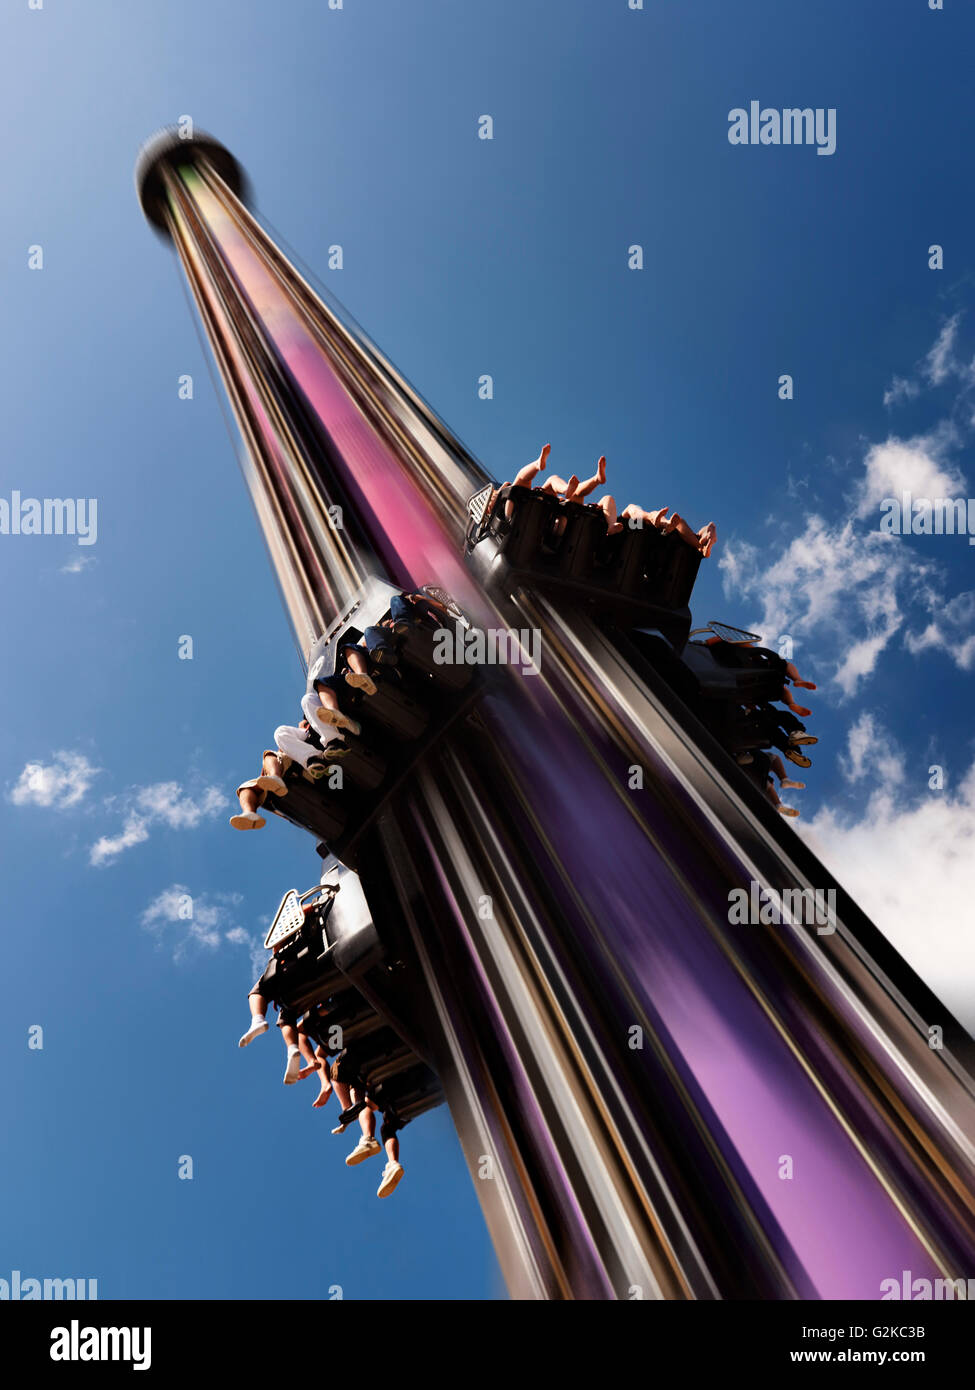 Drop Tower free fall thrill ride at Canada's Wonderland amusement park, Vaughan, Ontario Province, Canada - Stock Image